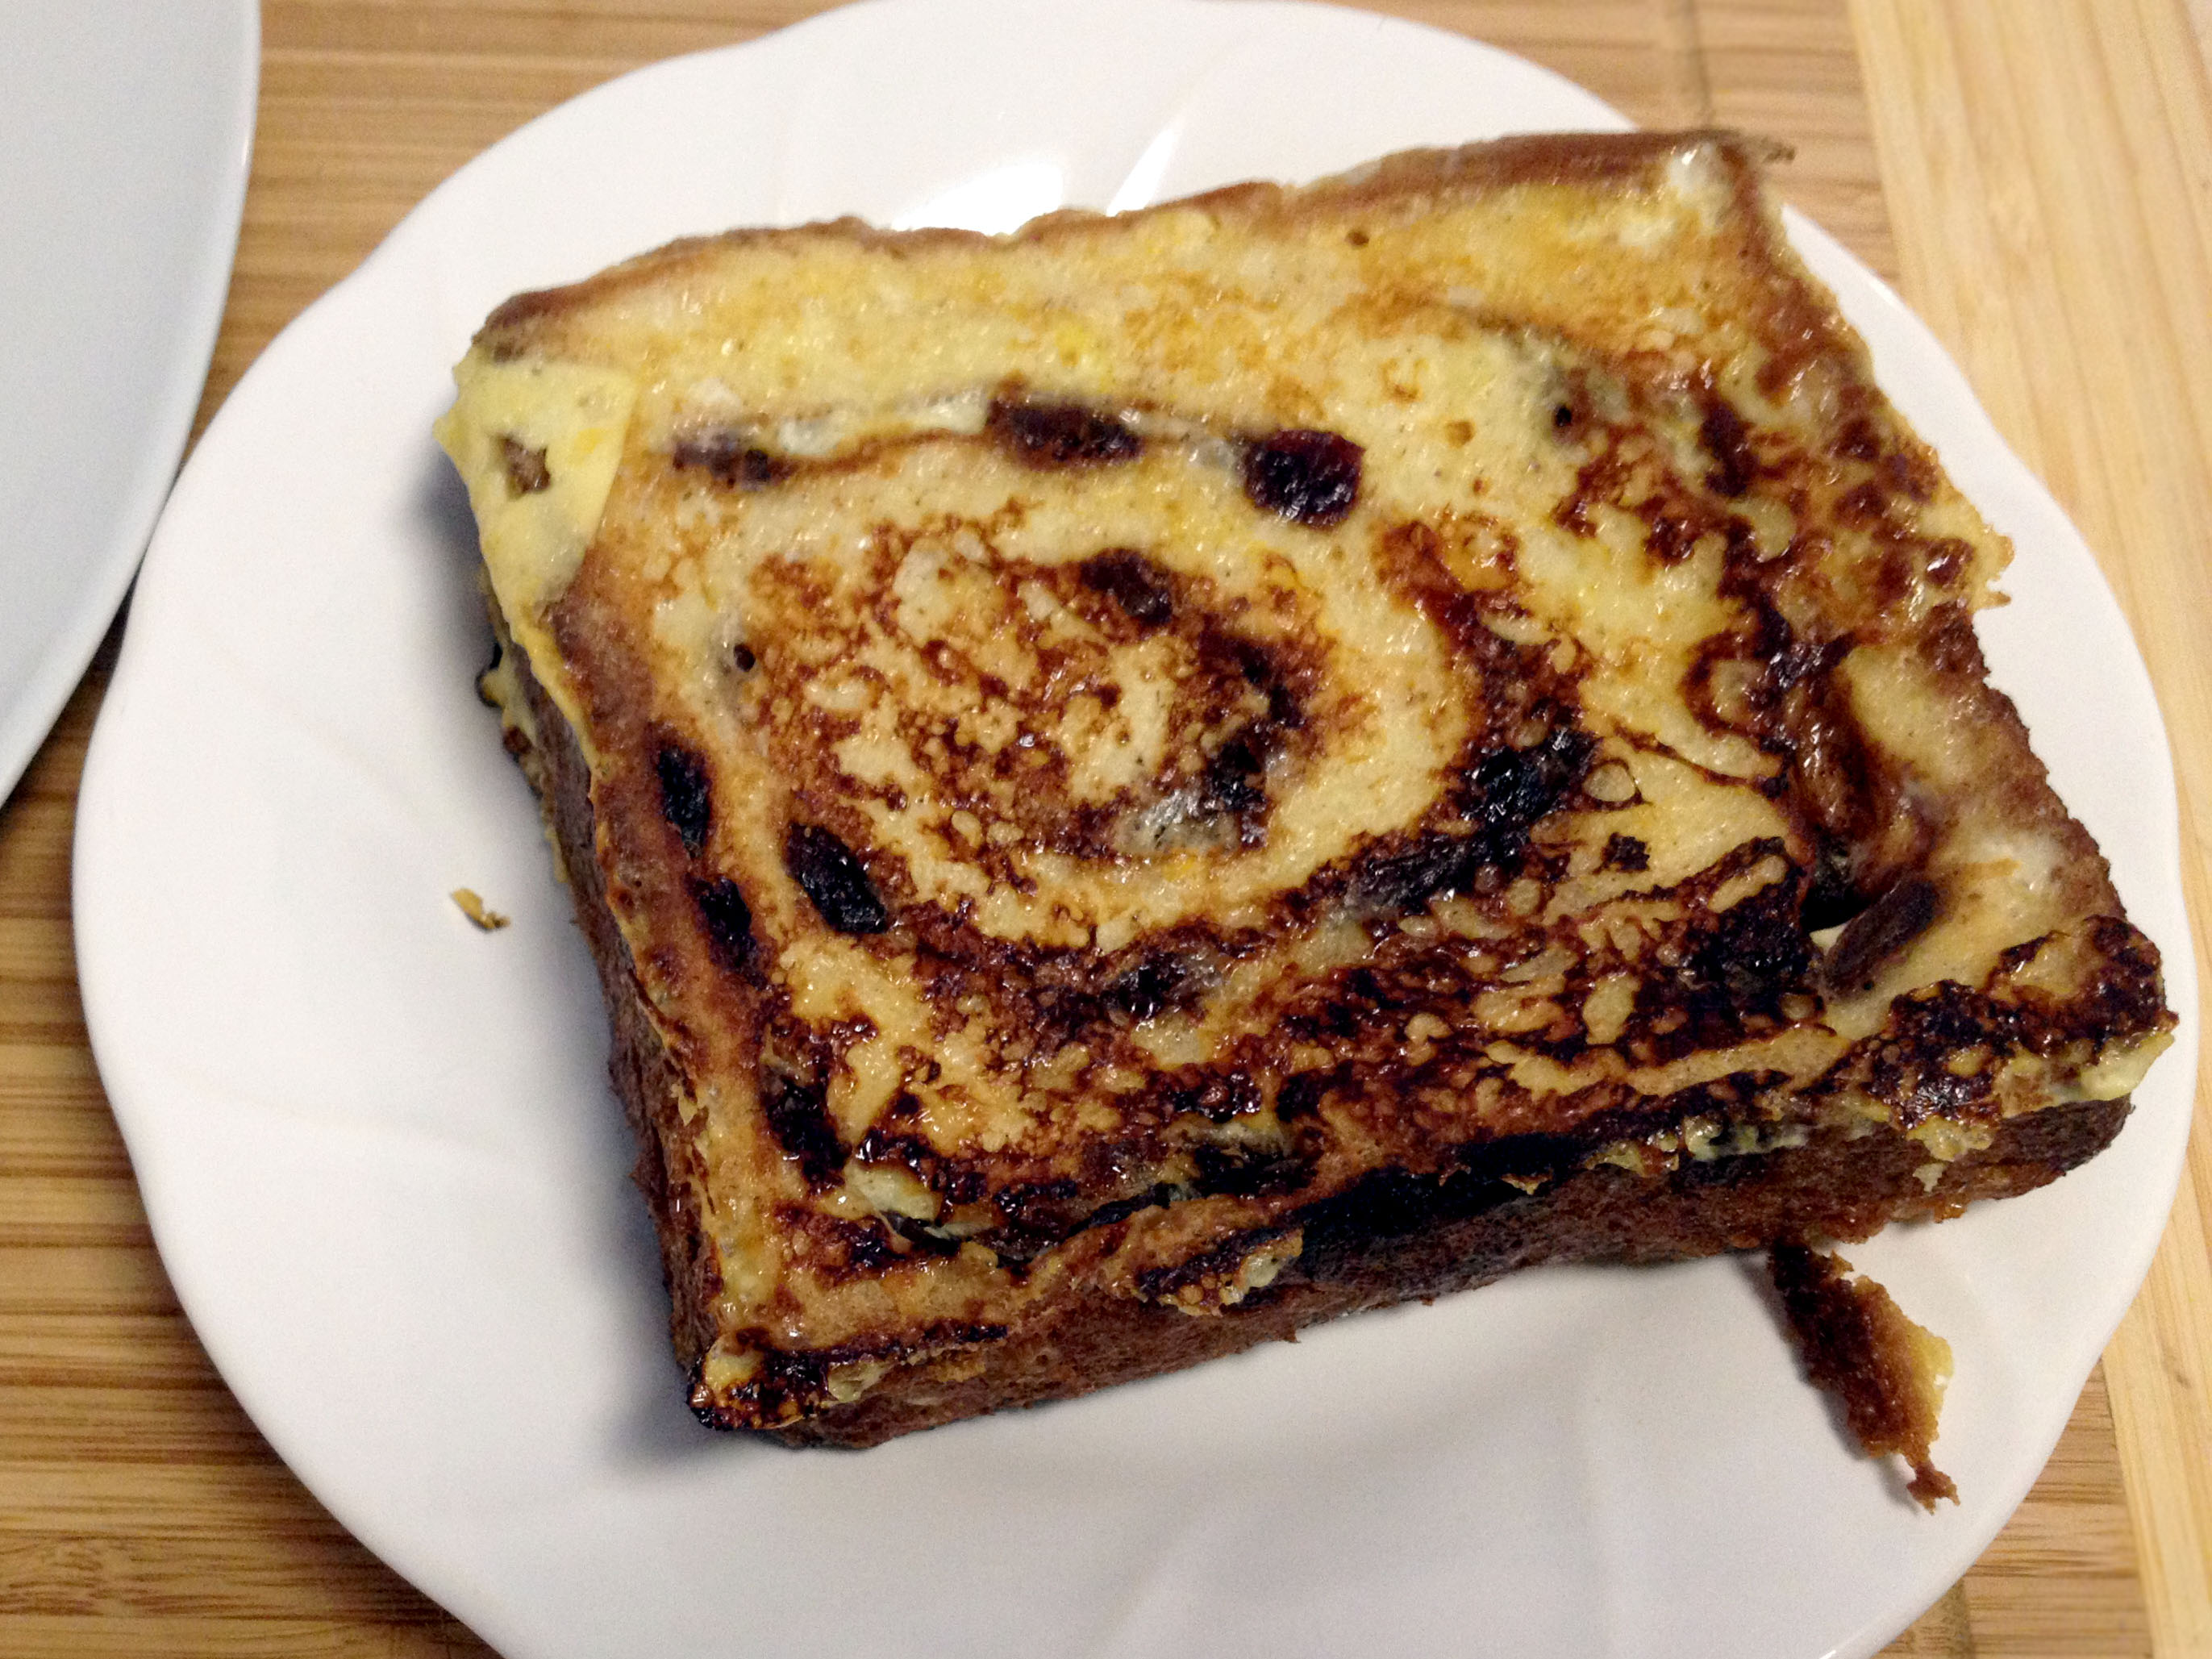 ... swirl wheat bread cinnamon swirl raisin bread cinnamon swirl french